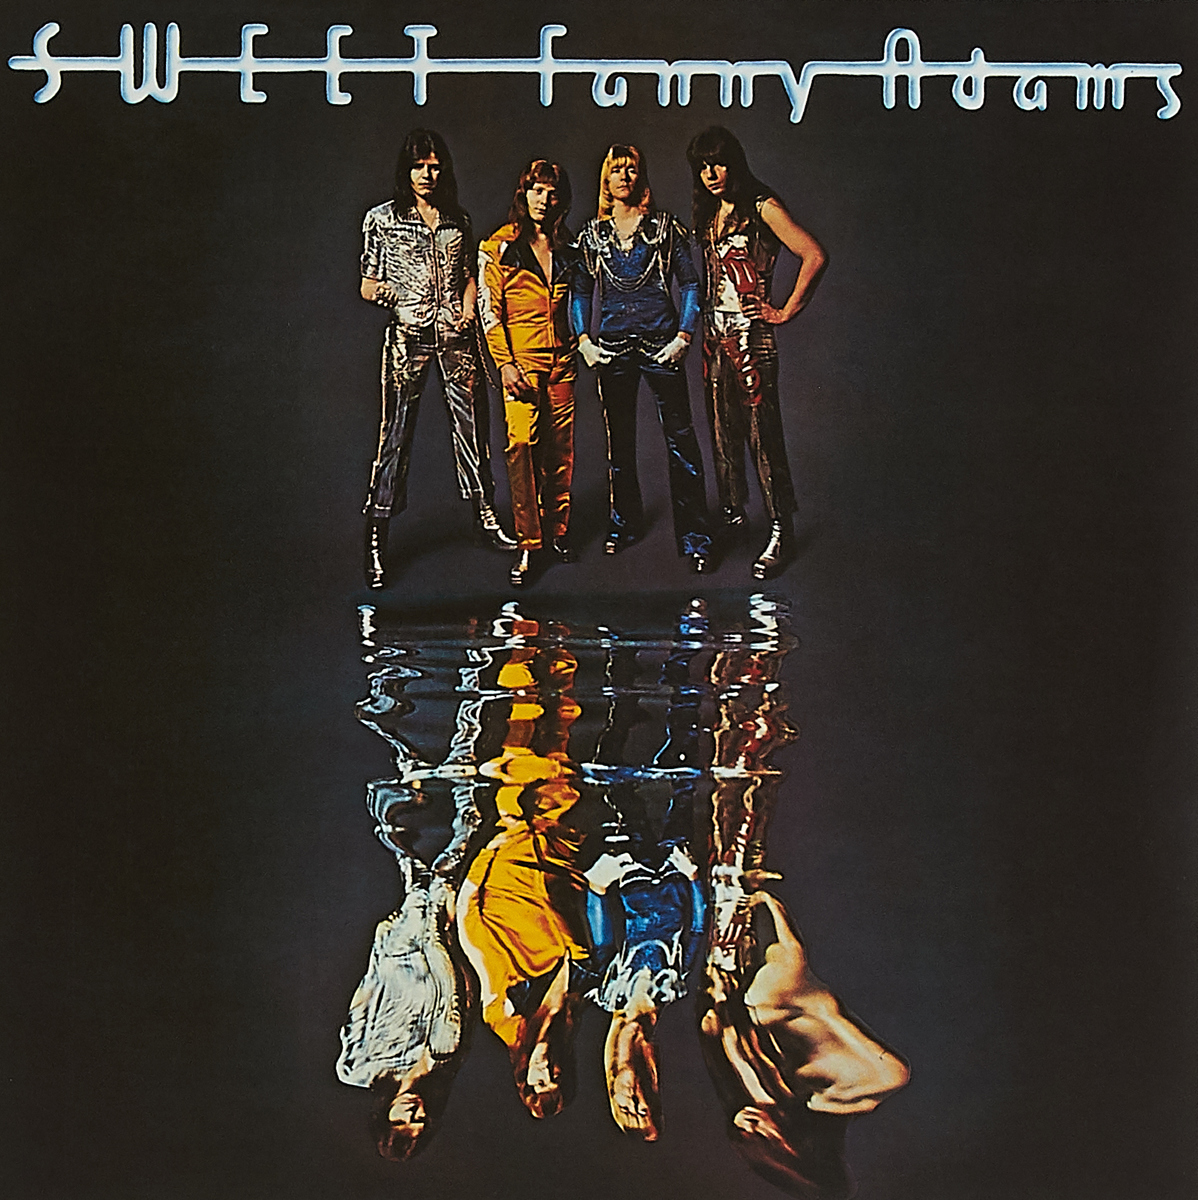 Sweet Sweet. Sweet Fanny Adams (New Vinyl Edition) (LP) sweet sweet give us a wink new vinyl edition lp